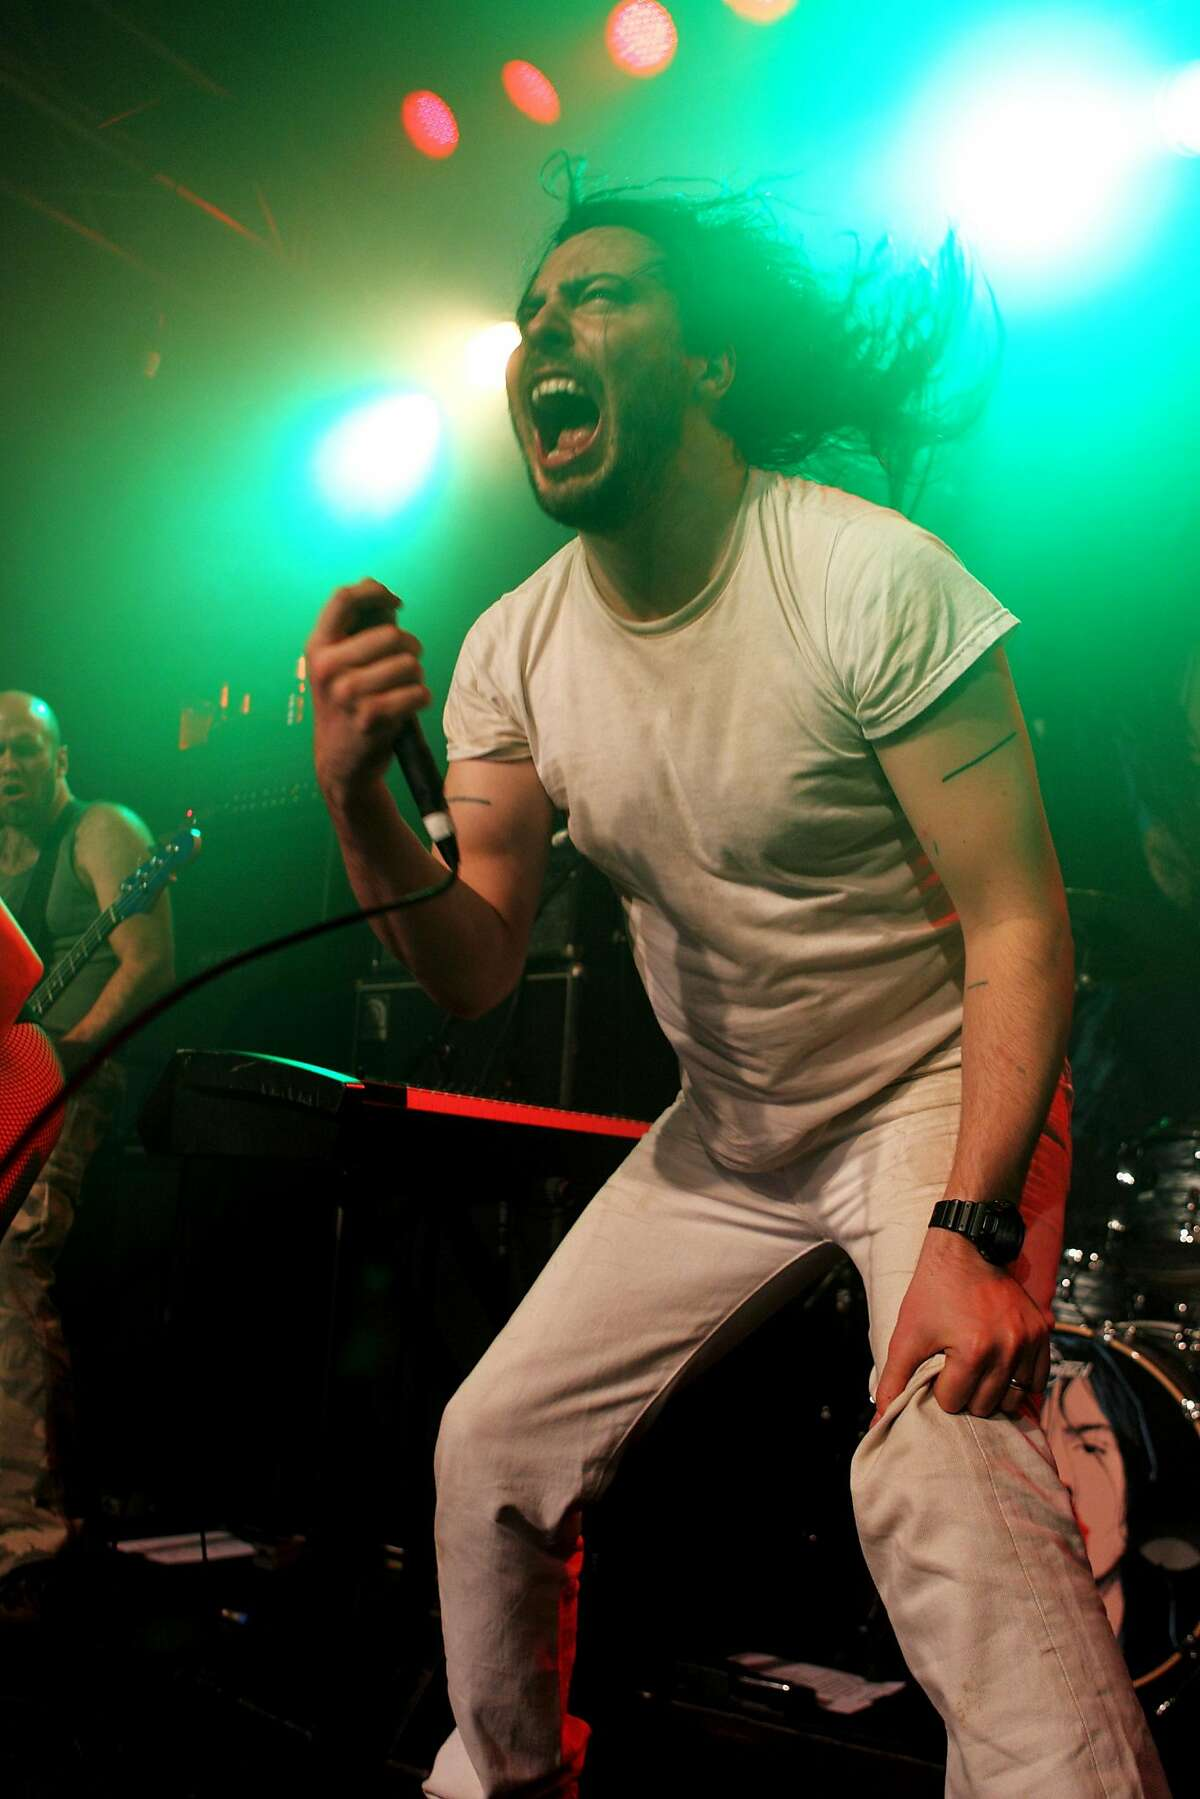 Andrew W.K. performs on stage at Kings College London Student Union on August 2, 2012 in London, United Kingdom. (Photo by Burak Cingi/Redferns via Getty Images)